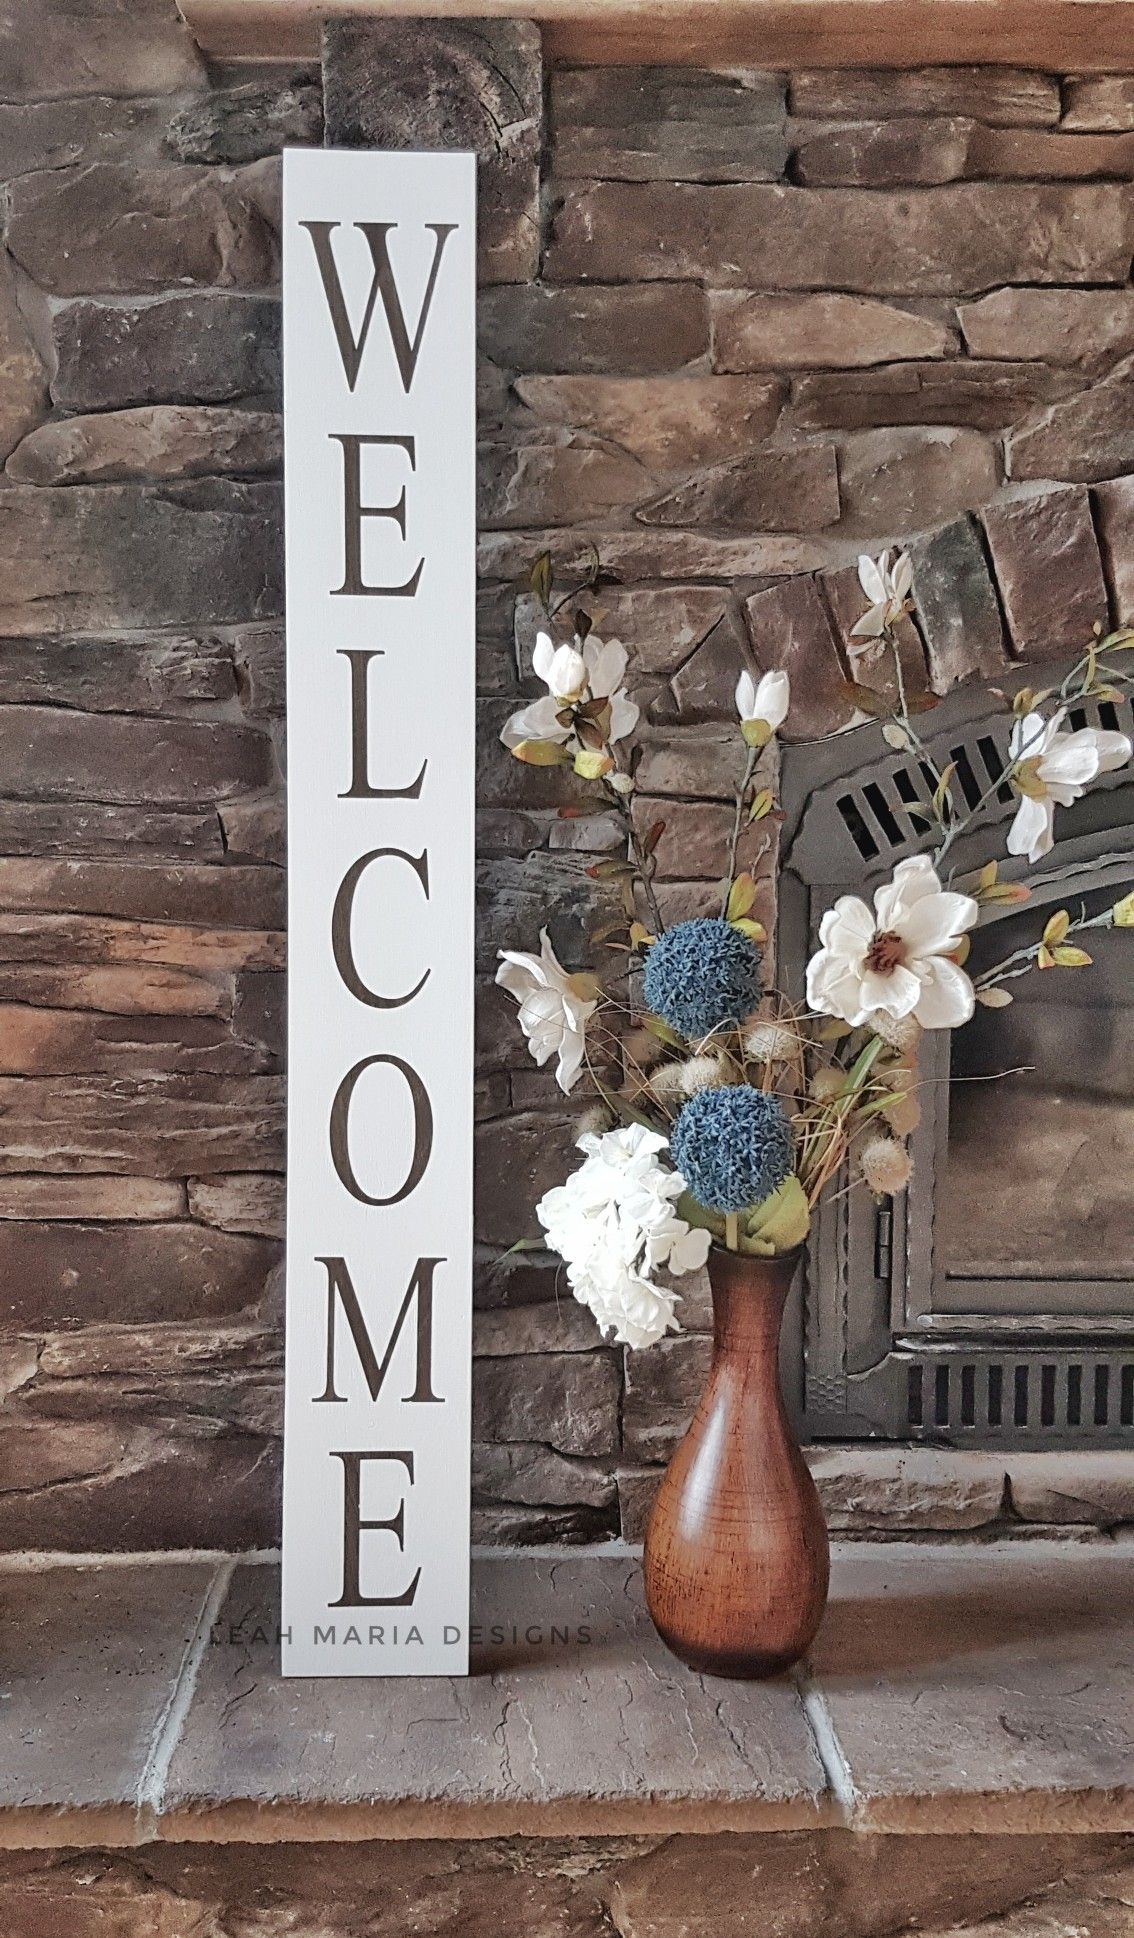 Large rustic wooden front porch welcome sign by leah maria designs